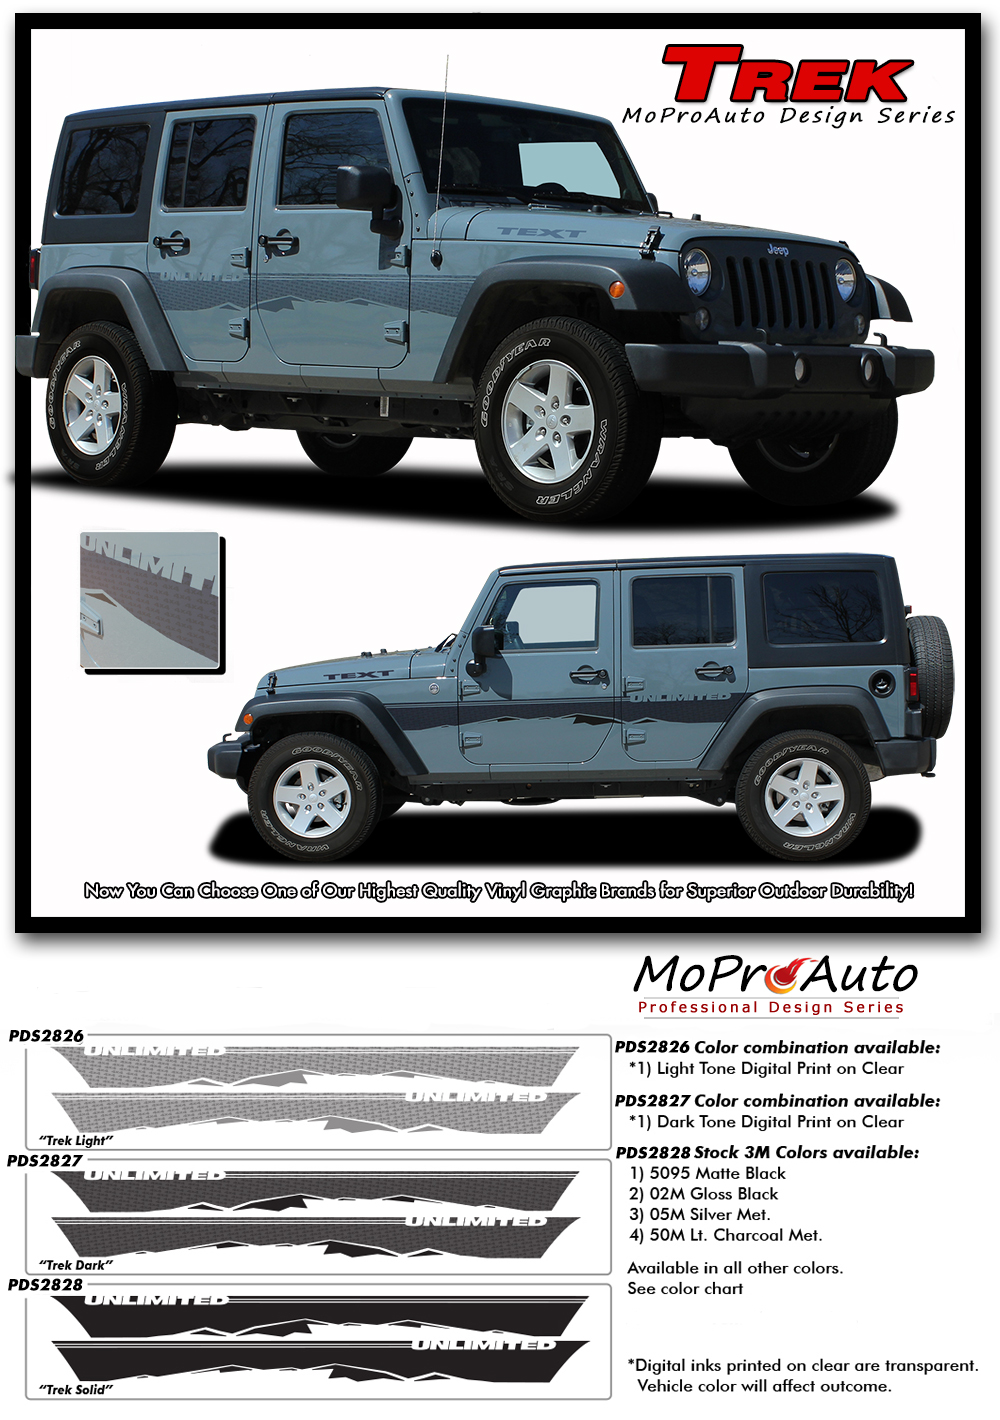 2007-2017 Jeep Wrangler - MoProAuto Pro Design Series Vinyl Graphics, Stripes and Decals Kit